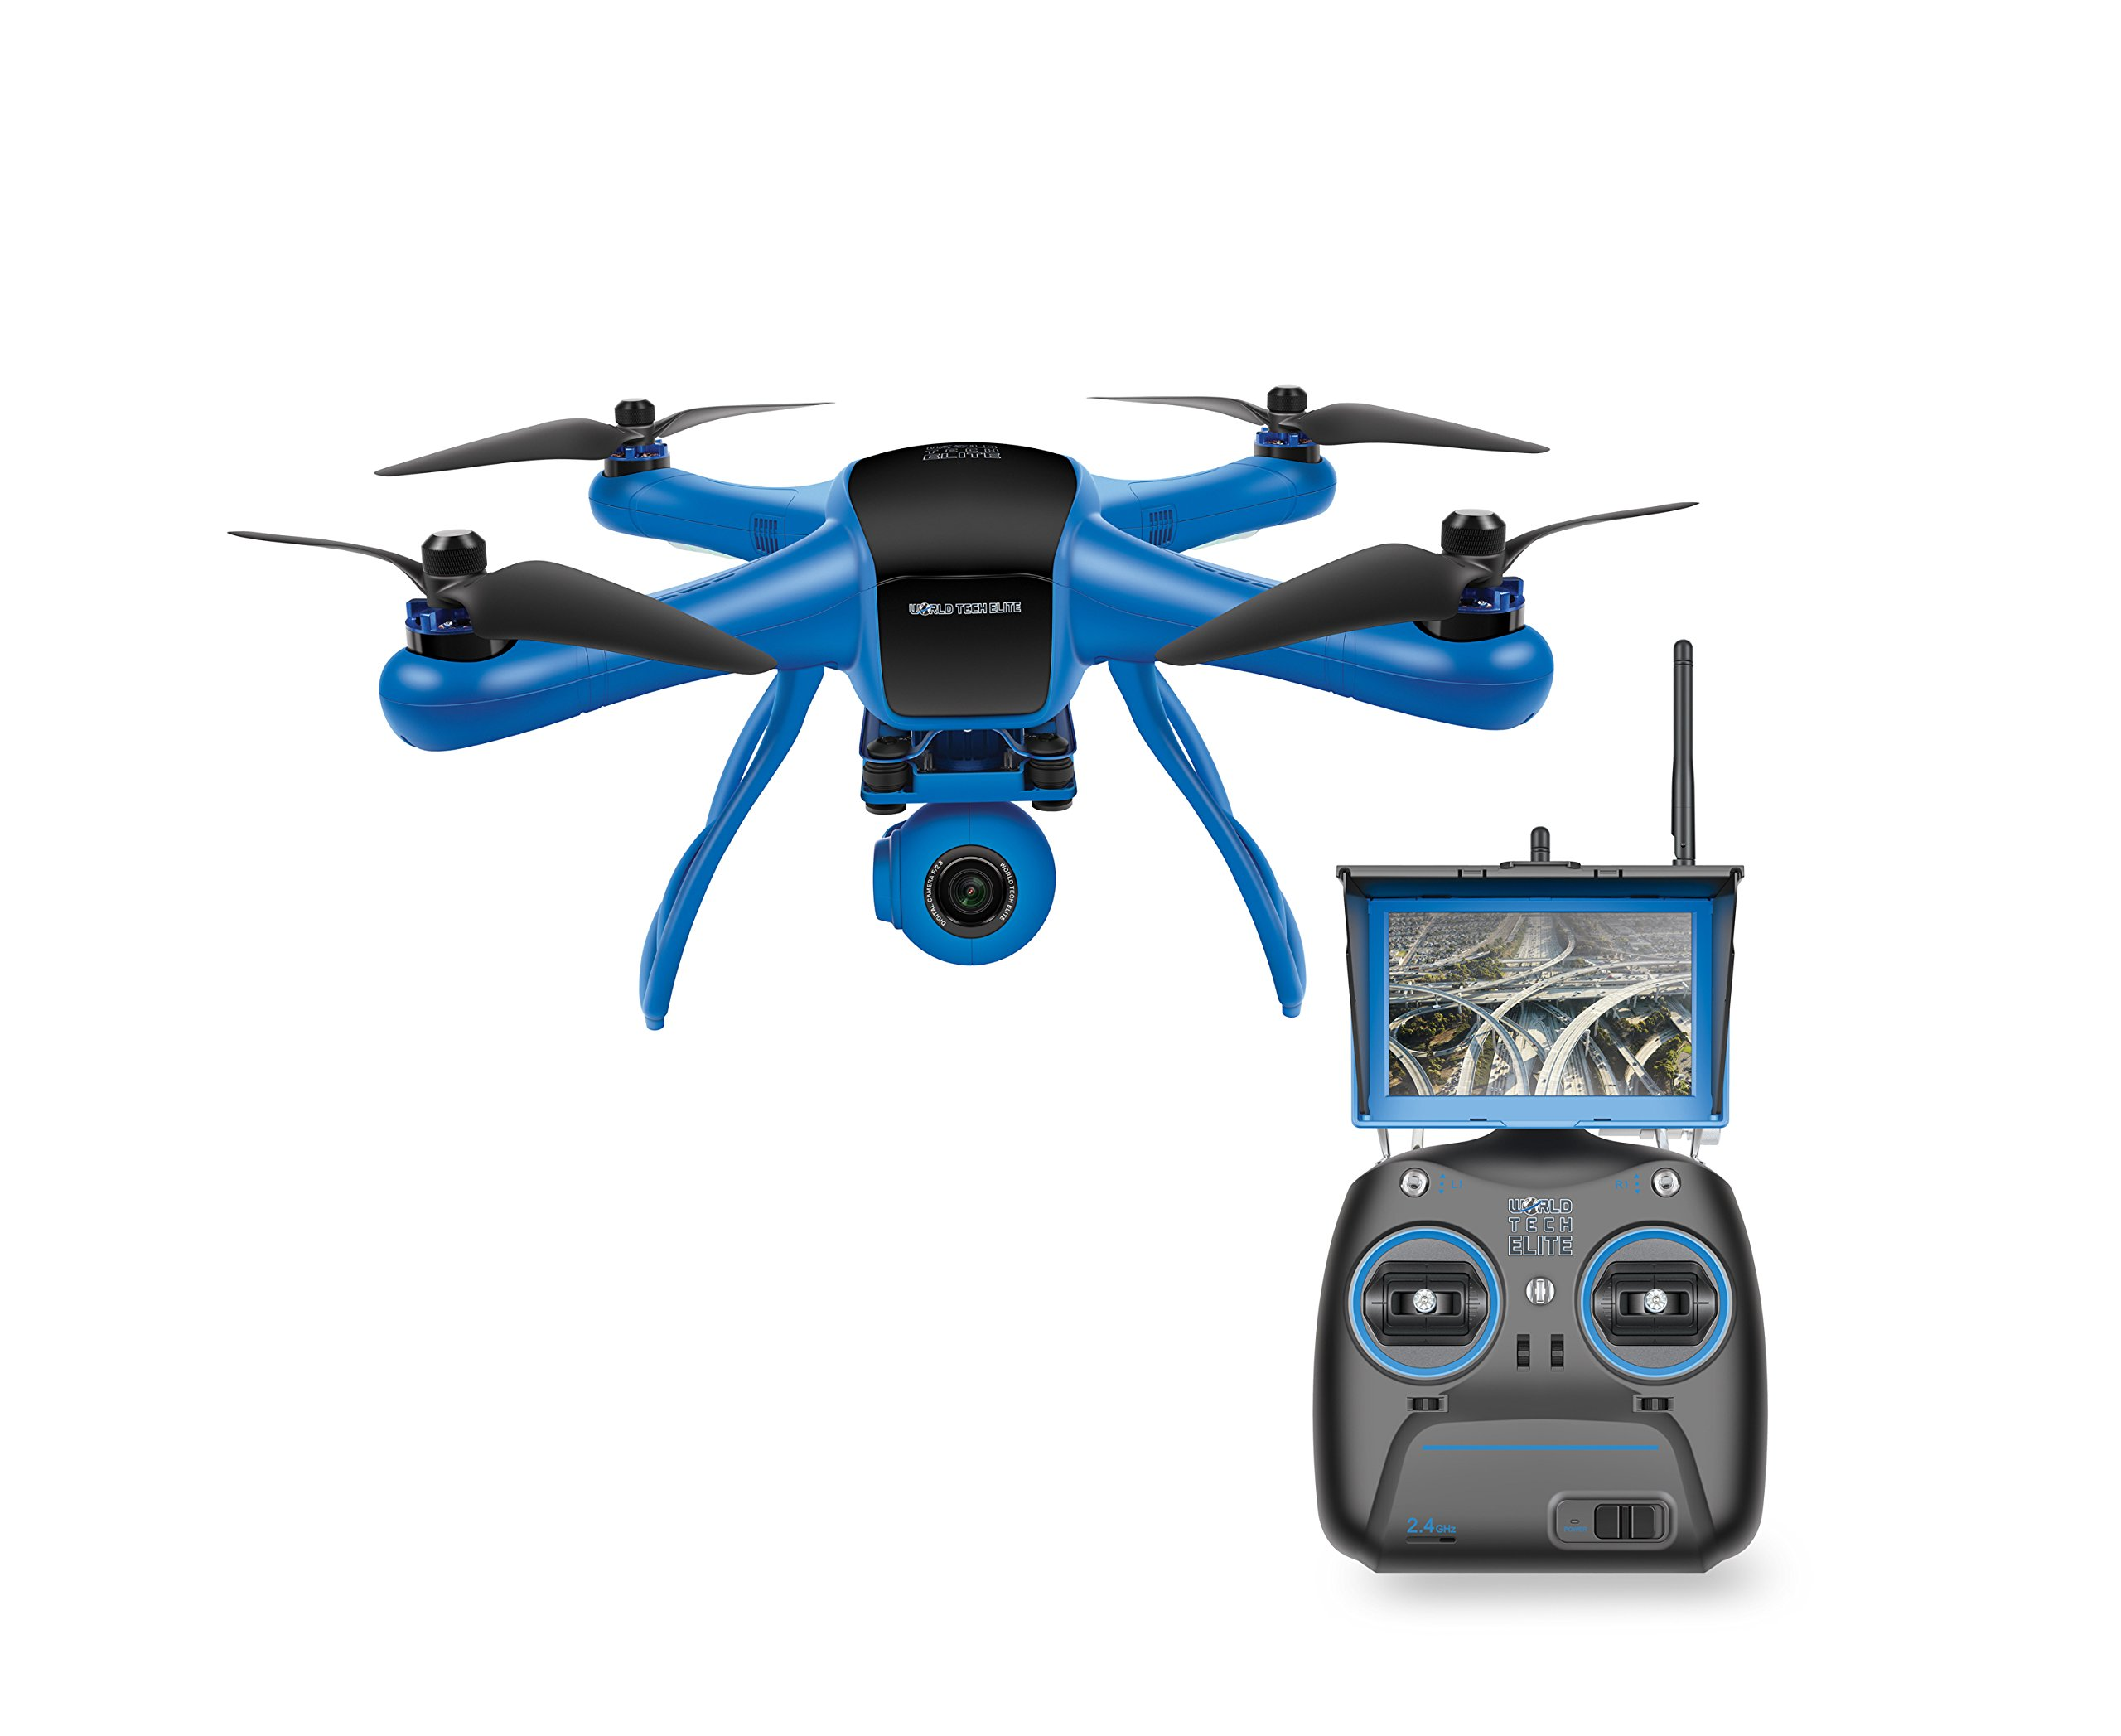 World Tech Toys Elite Raptor HD Gimbal Video Camera 2.4GHz 4.5 Channel RC Quadcopter, Blue/Black, 12.5 x 12.5 x 7.25